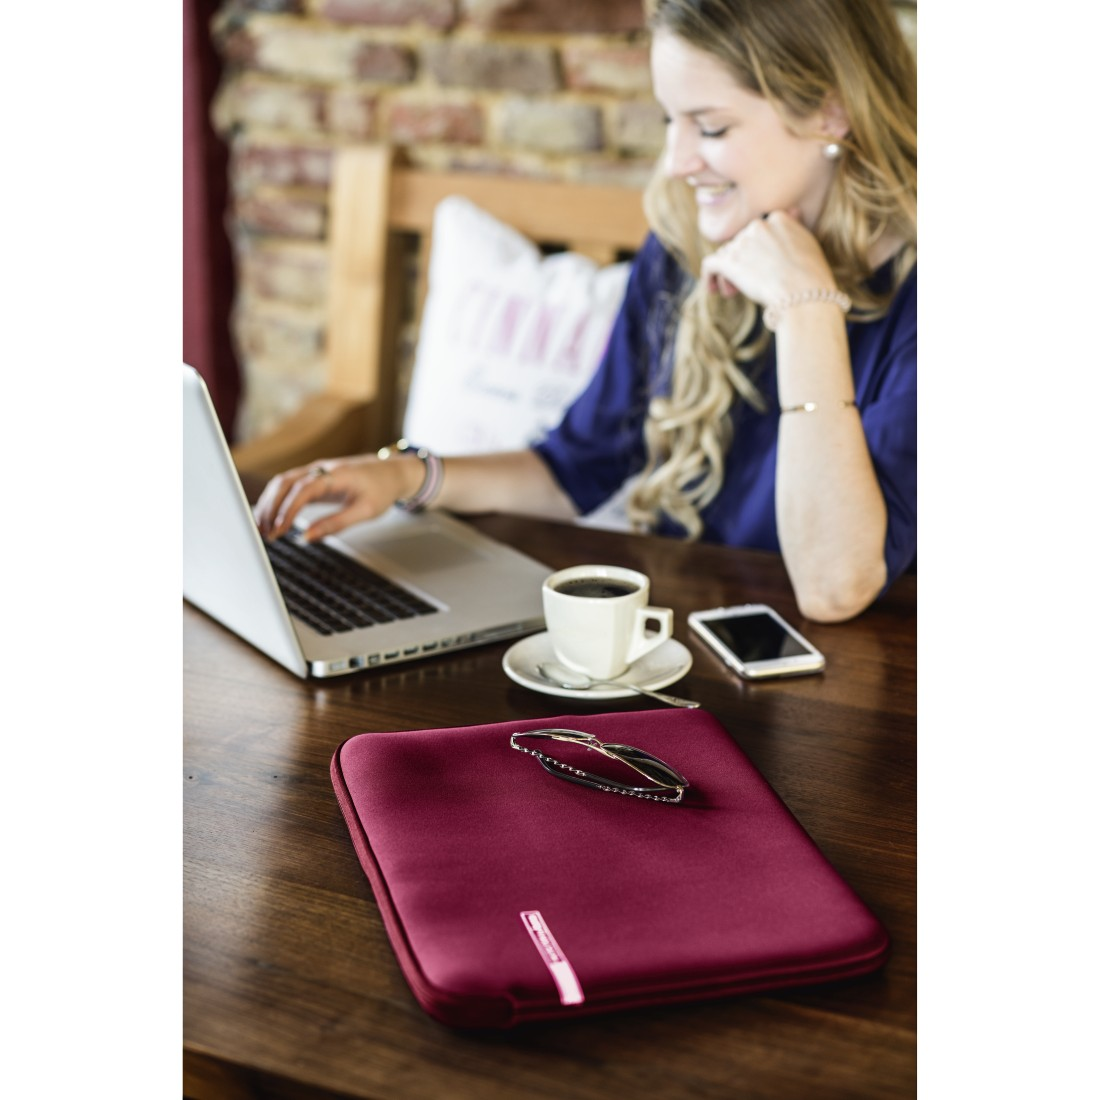 awx High-Res Appliance - Hama, Neoprene Style Notebook Sleeve, up to 34 cm (13.3), burgundy